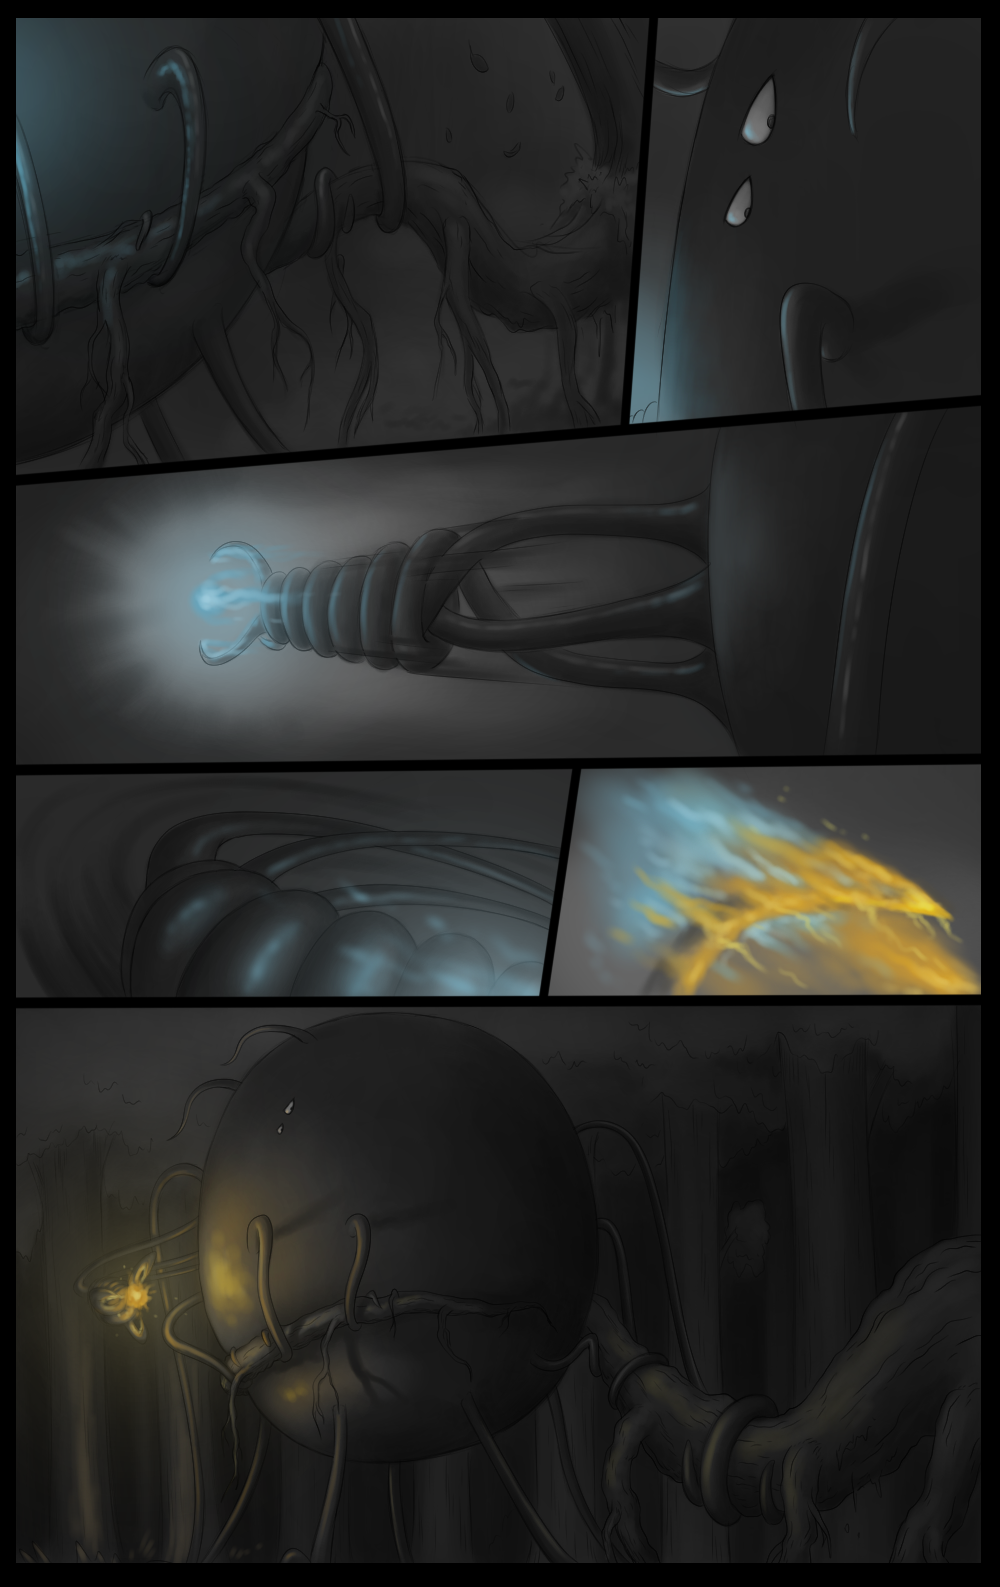 Page 92 - Battle against Glowslimer (Part 39)